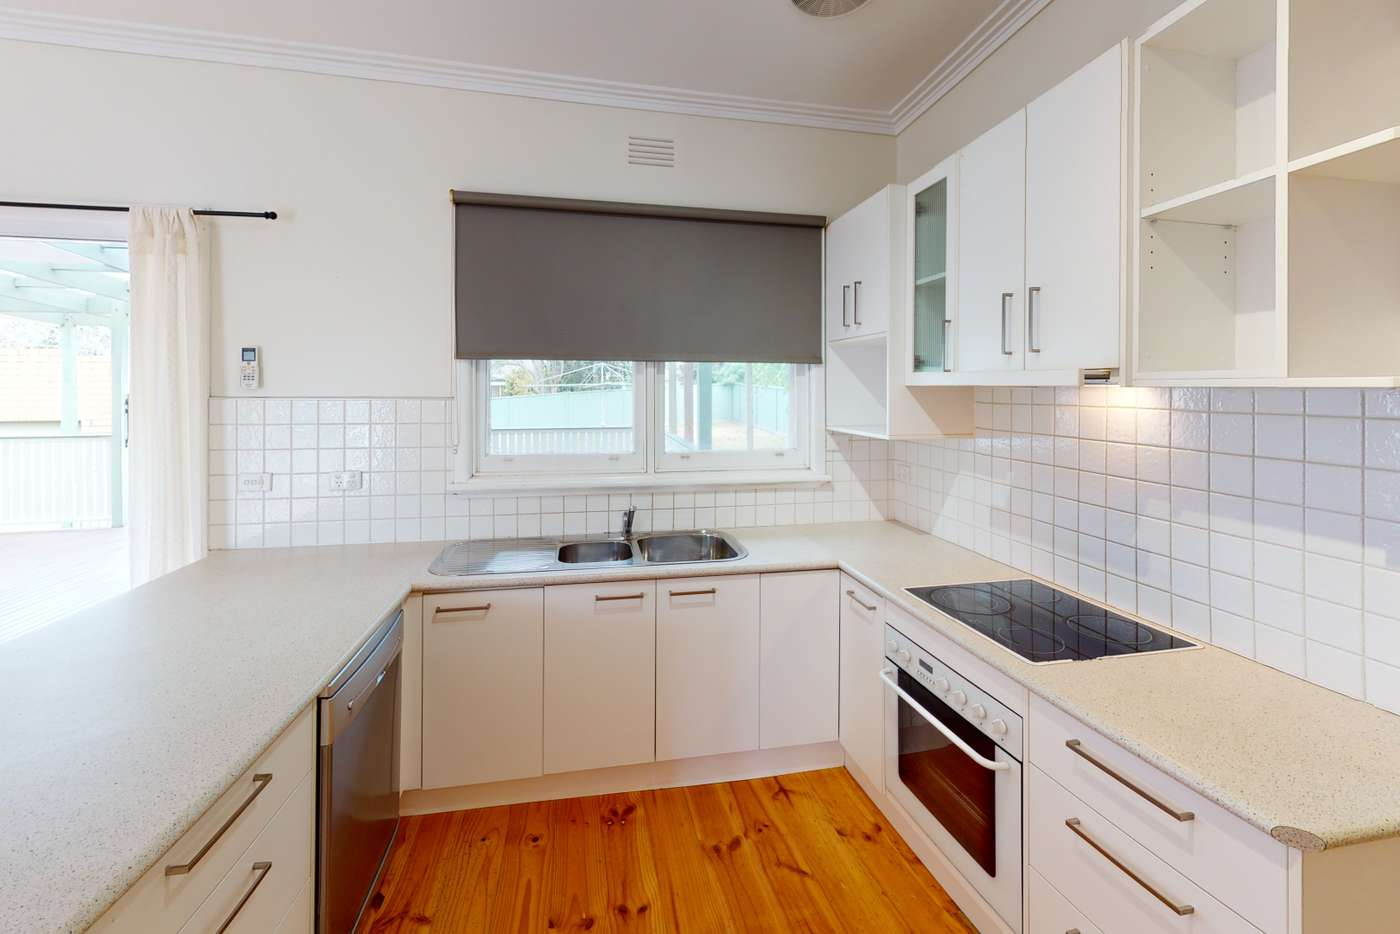 Sixth view of Homely house listing, 34 Clarence Avenue, Kennington VIC 3550